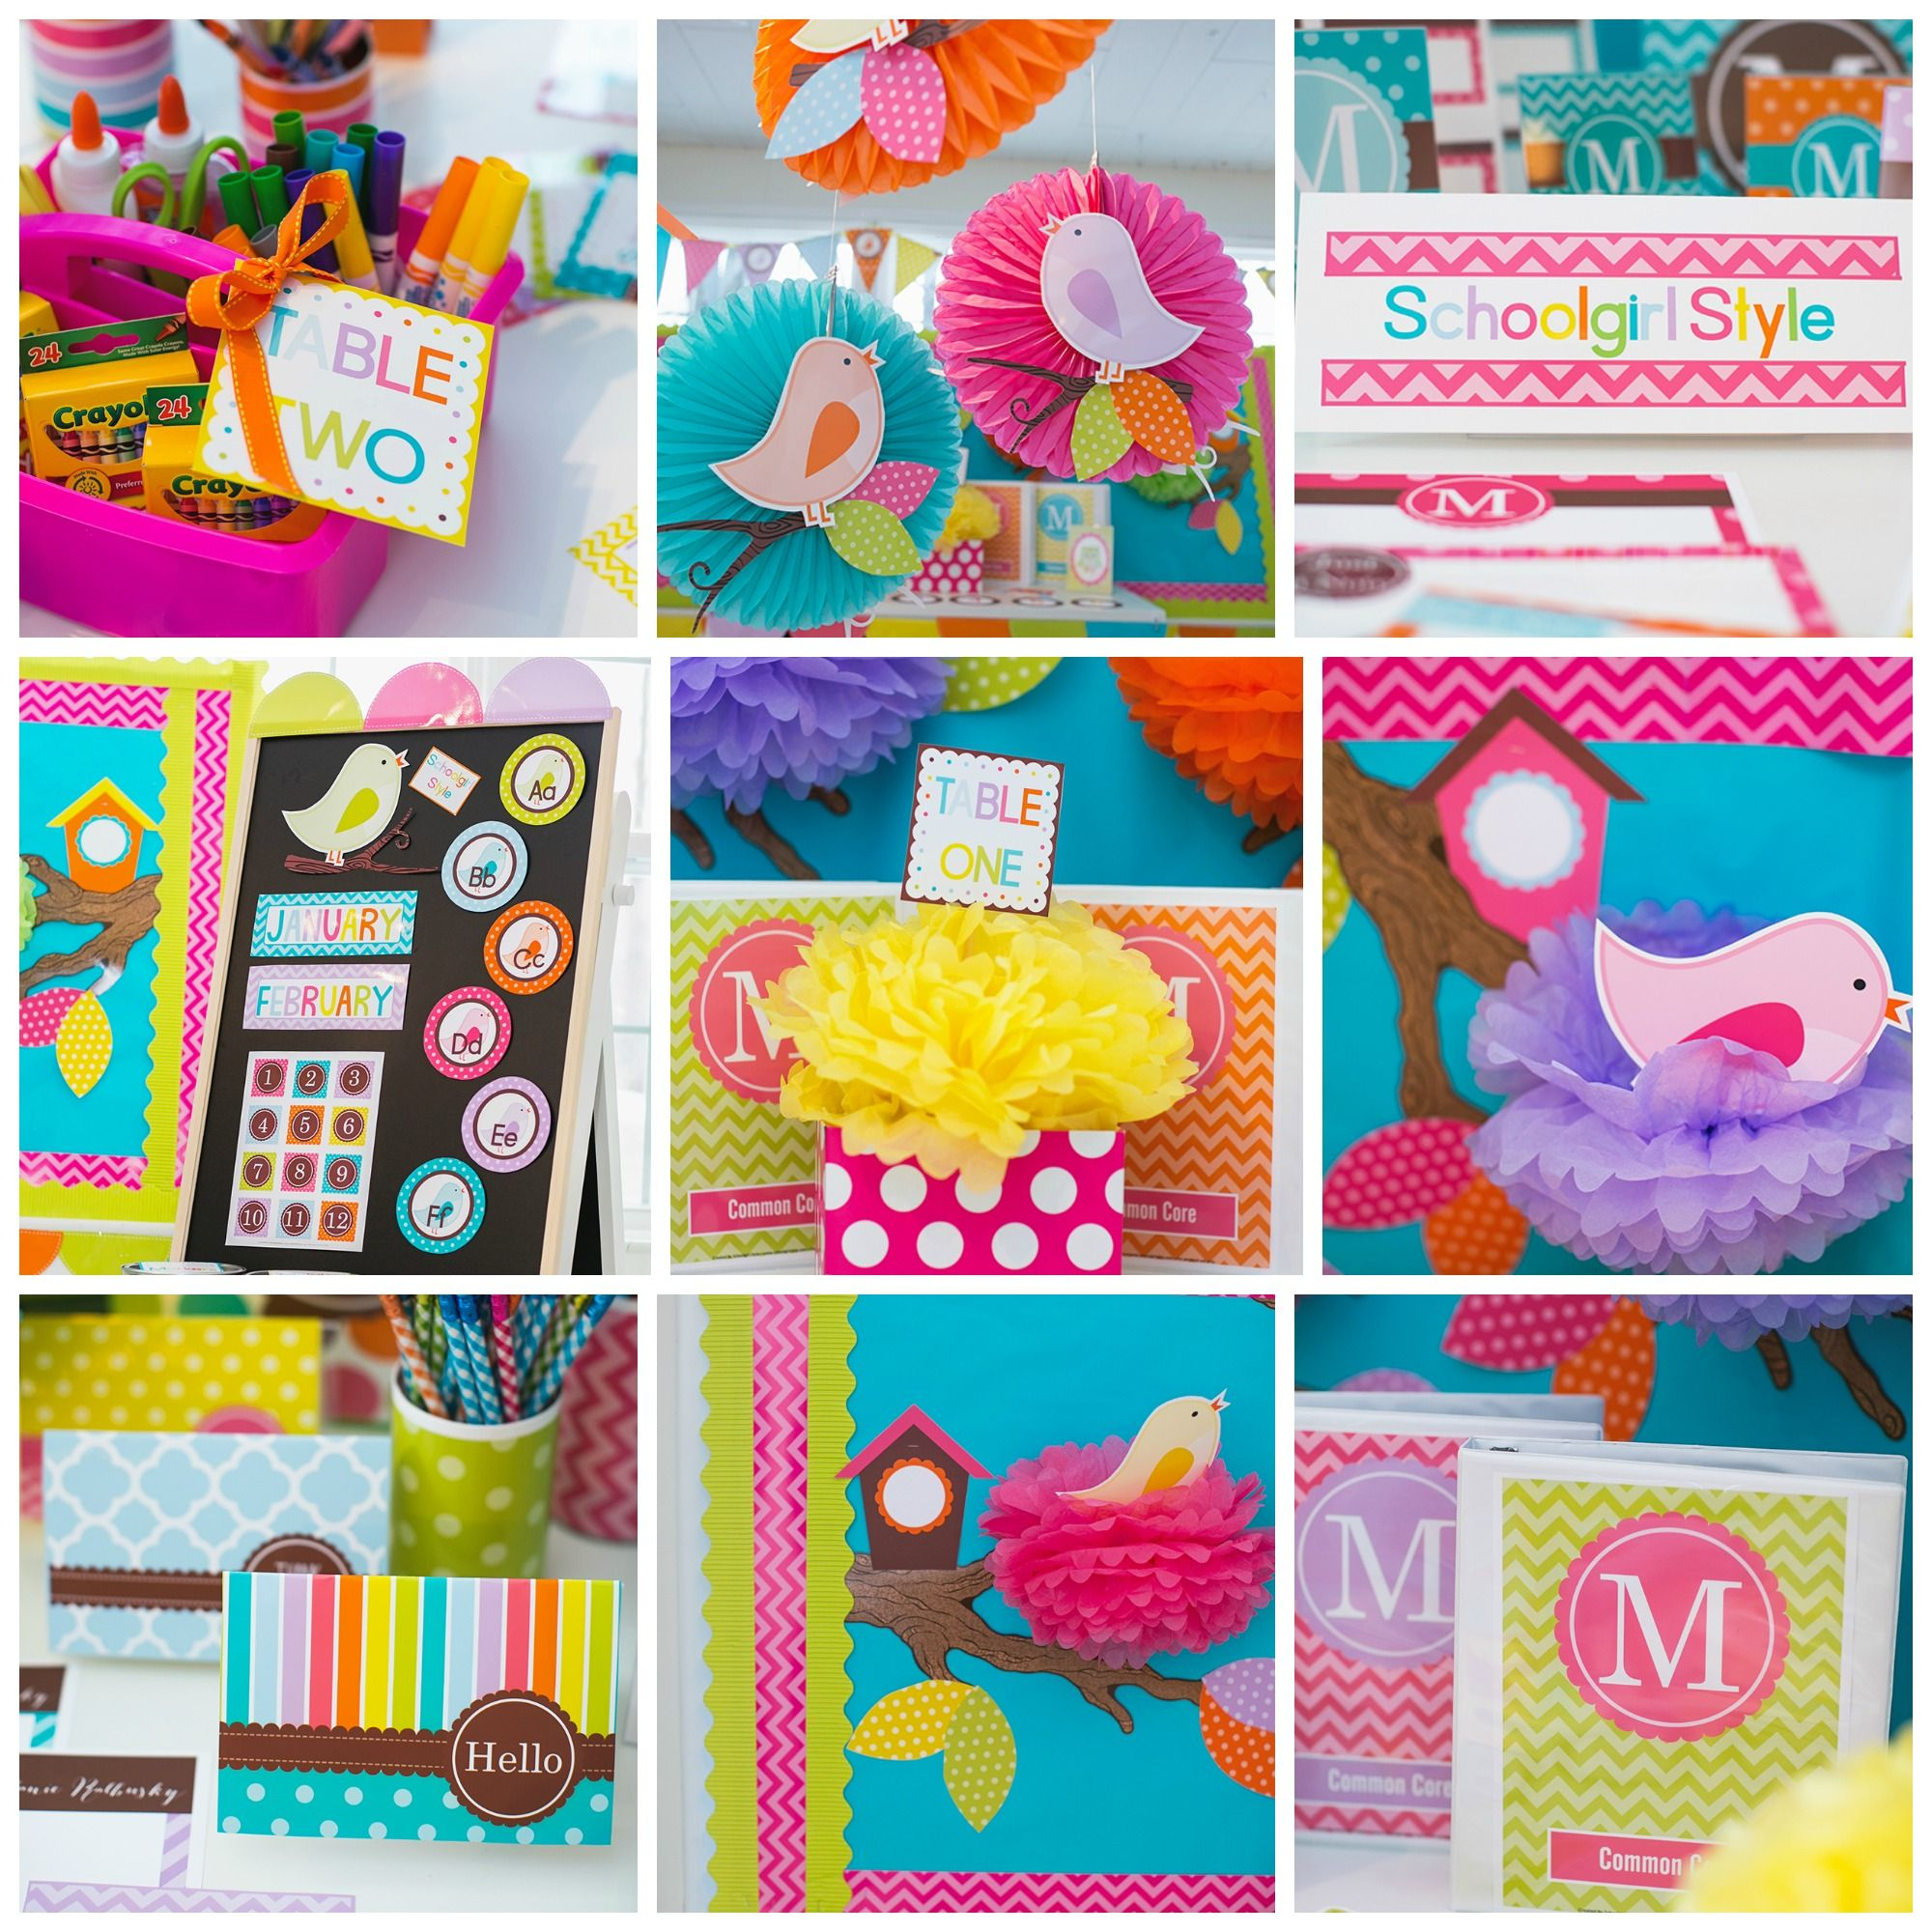 Lovely Classroom Decoration Theme Ideas Part - 3: Bird Classroom Theme Decor By Schoolgirl Style Owl Chevron Polka Dots Pink  Green Orange Turquoise Lavender